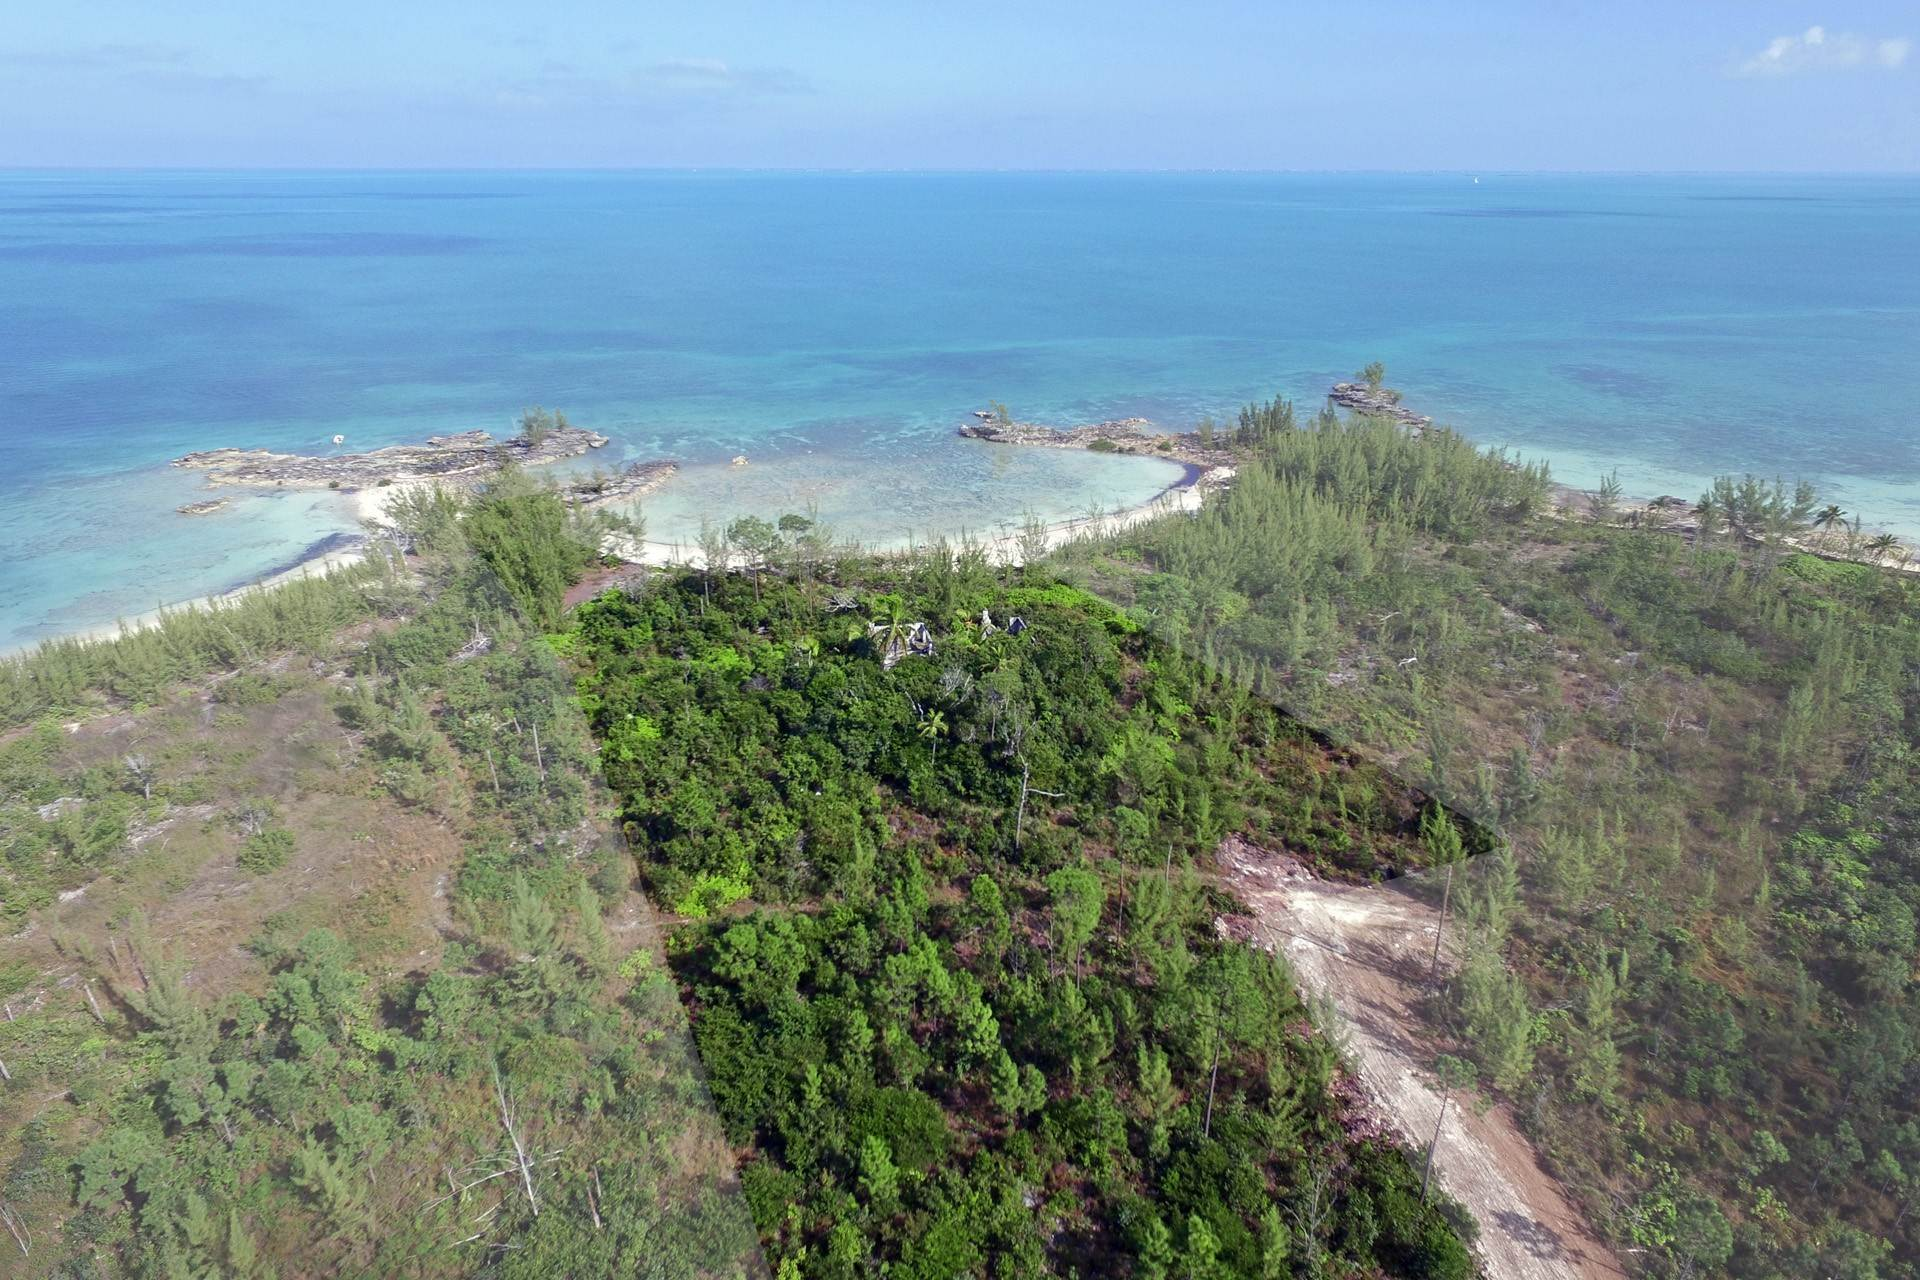 Terreno por un Venta en 2.982 Waterfront Acres, Central Abaco Island - Cabbage Point Parcel 1 MLS 44249 Turtle Rocks, Abaco, Bahamas